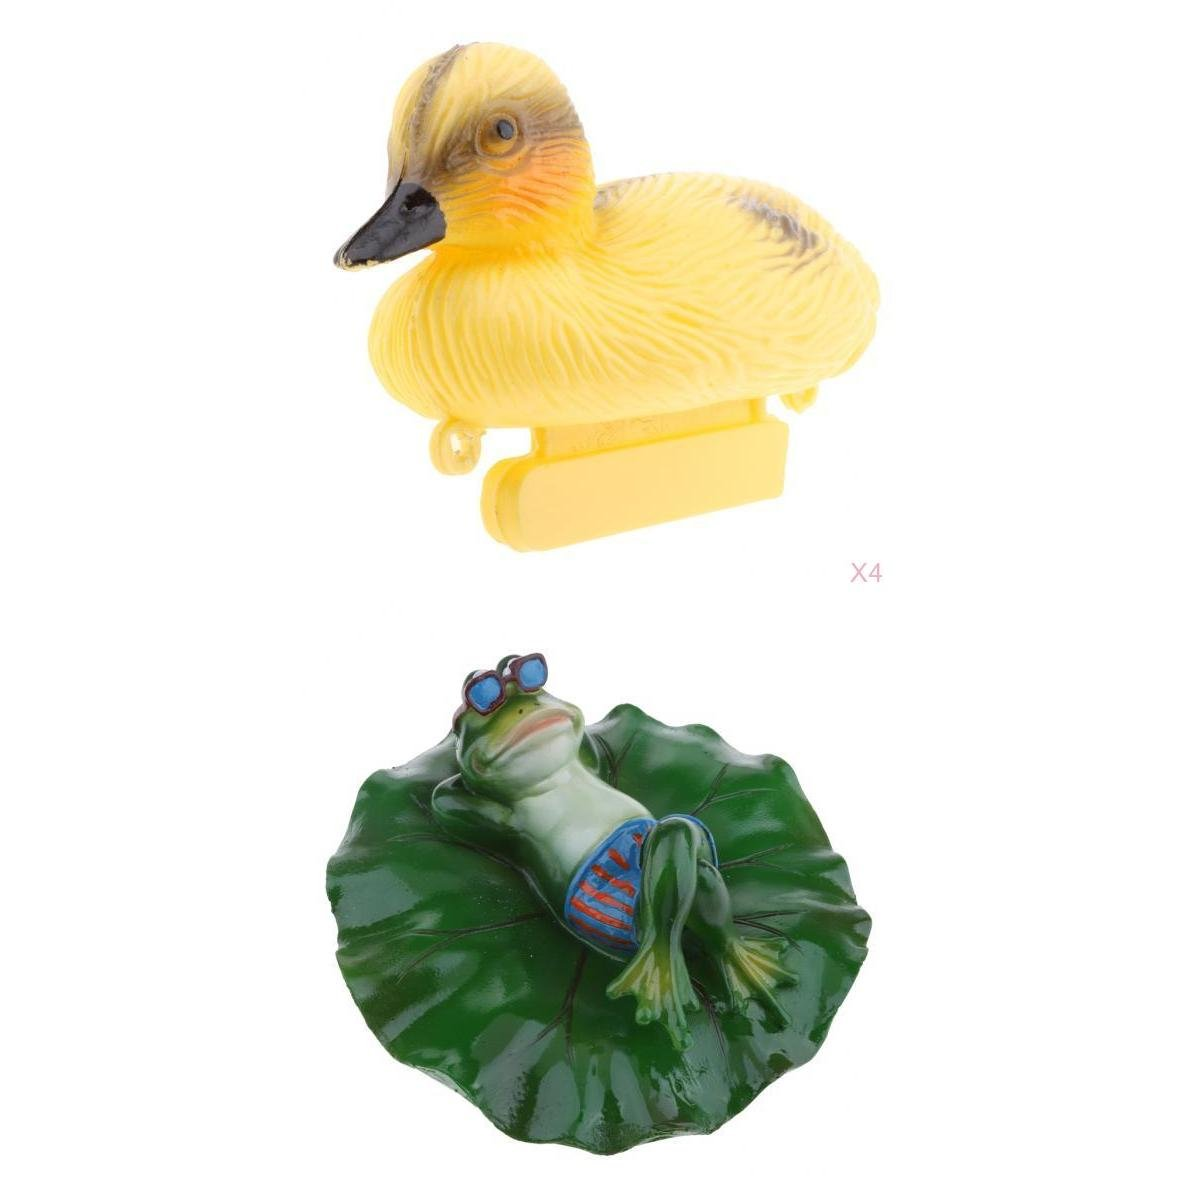 D DOLITY 5x Creative Animal Ornament Water Floating Duck Lying Frog on Lotus Leaf Figurine Resin Green Plants Kid Toys Fountain Decoration Garden Decor